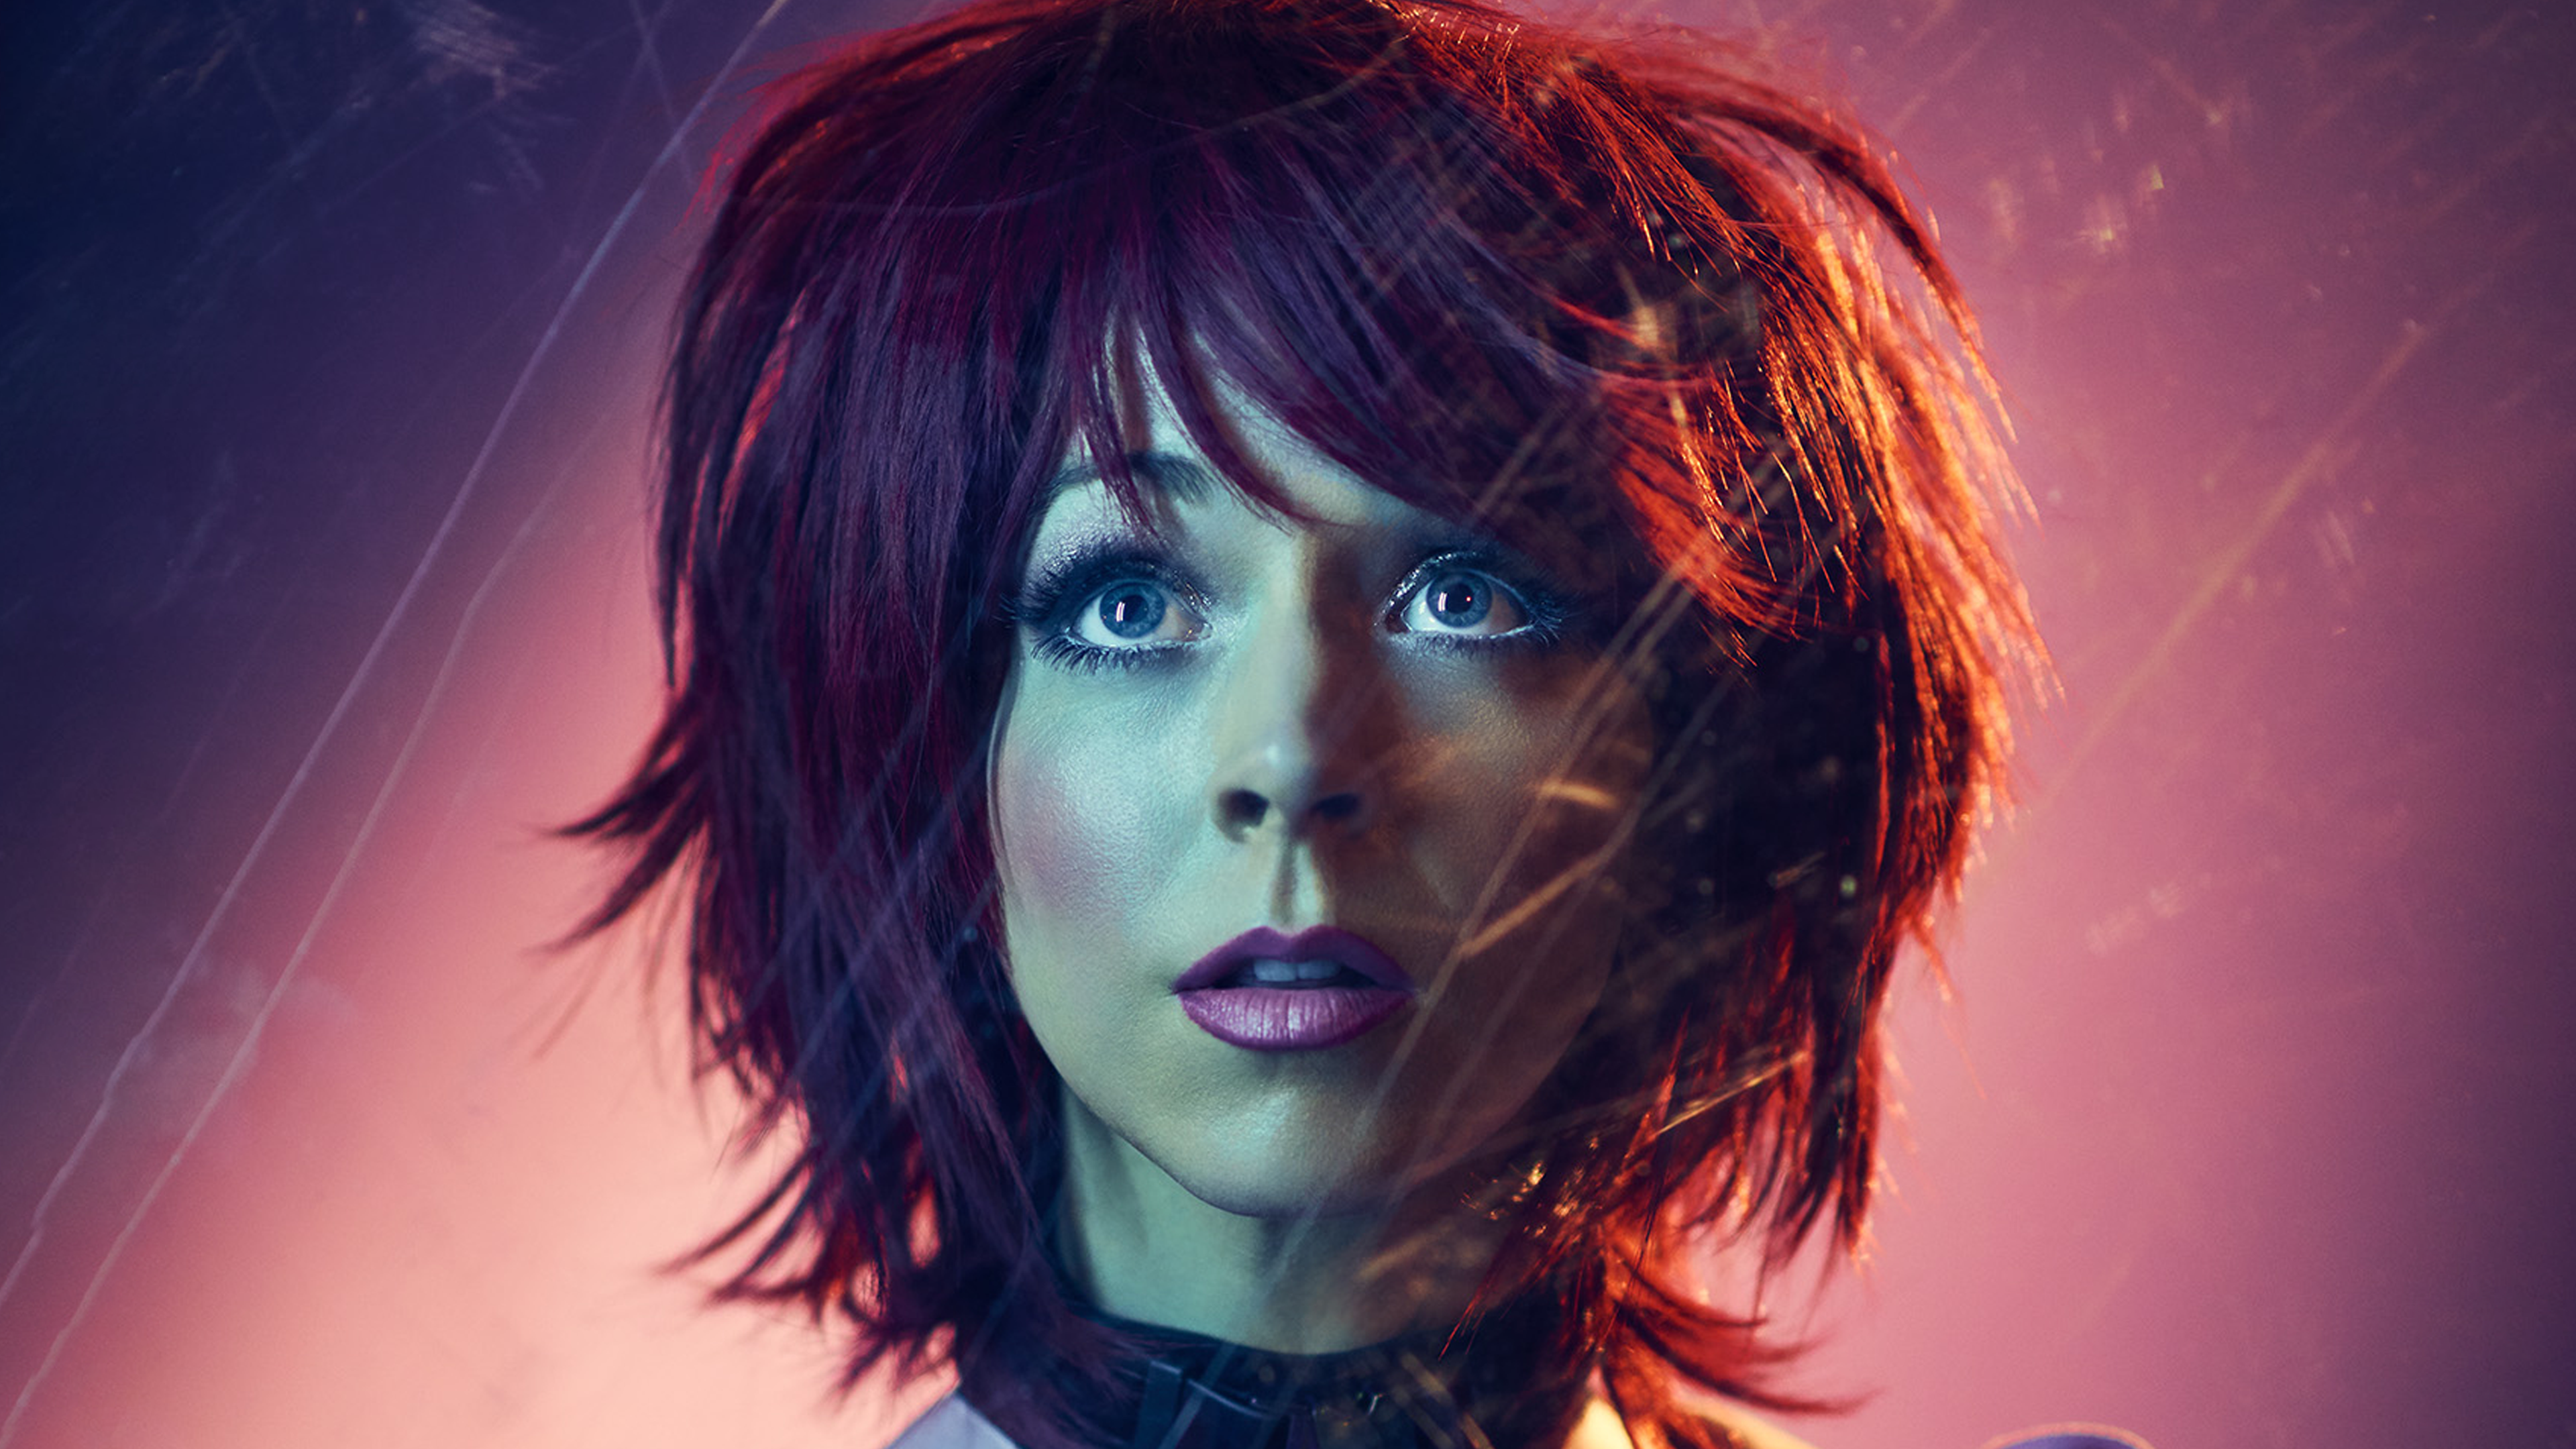 Lindsey Stirling (Rescheduled Date)